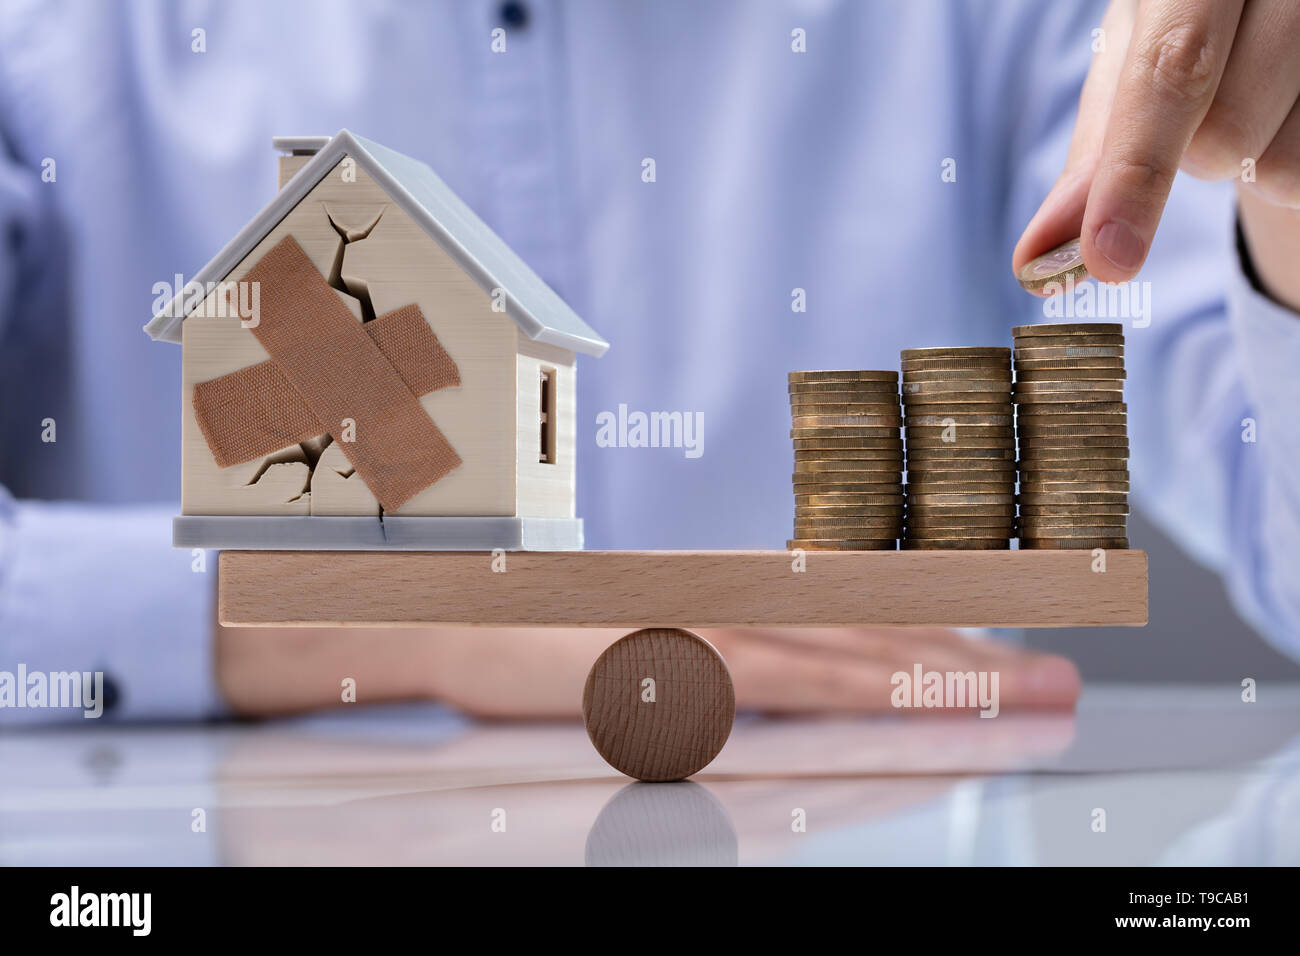 Man's Hand Placing Coin On Top Of The Stack Coins And Broken House Over Seesaw - Stock Image